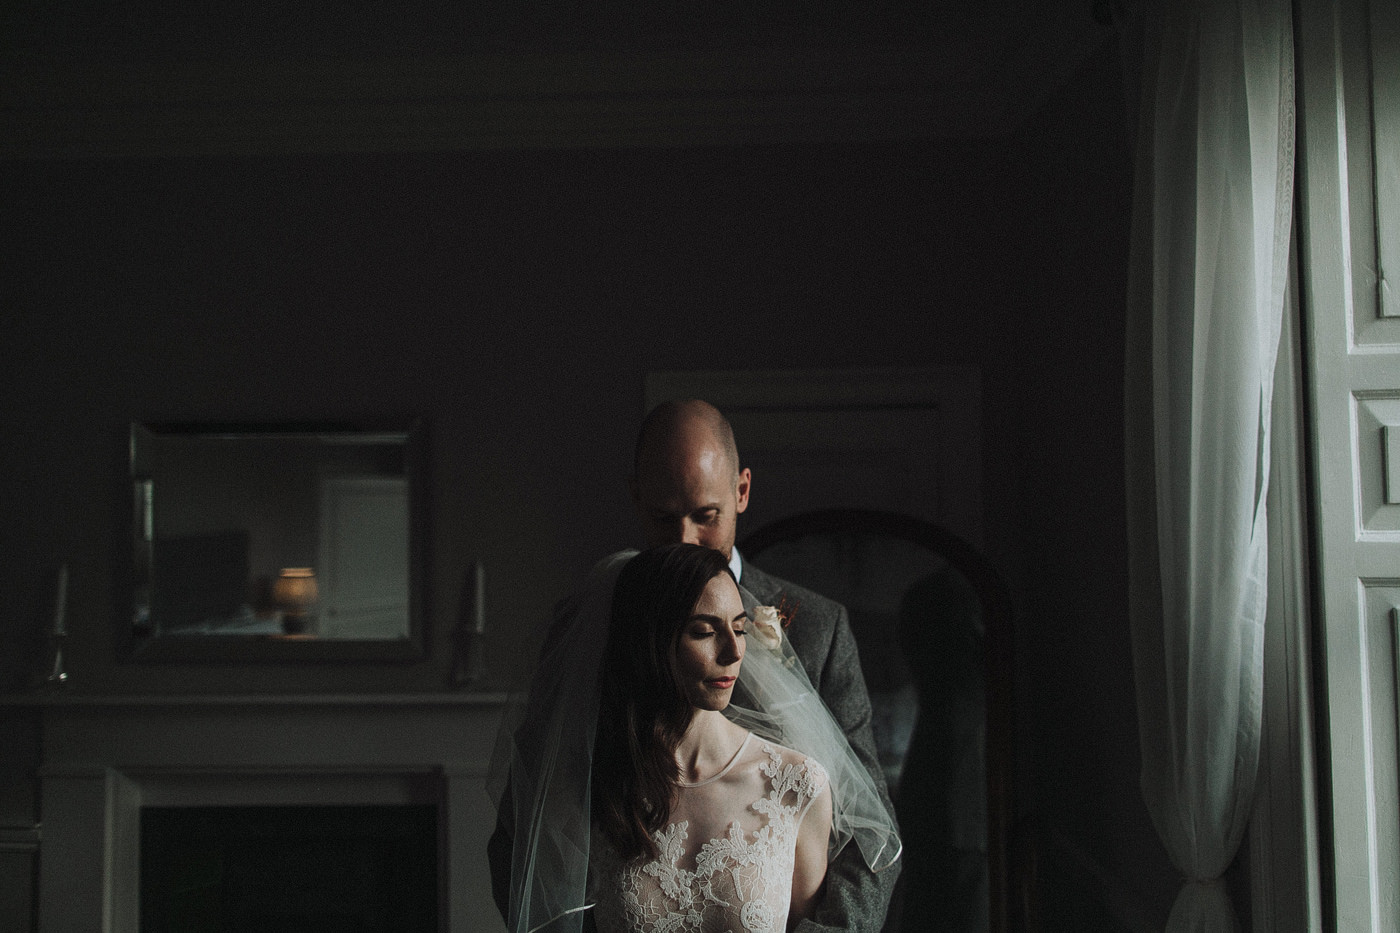 Cloughjordan House wedding - M&G - wedding photographer Ireland 10